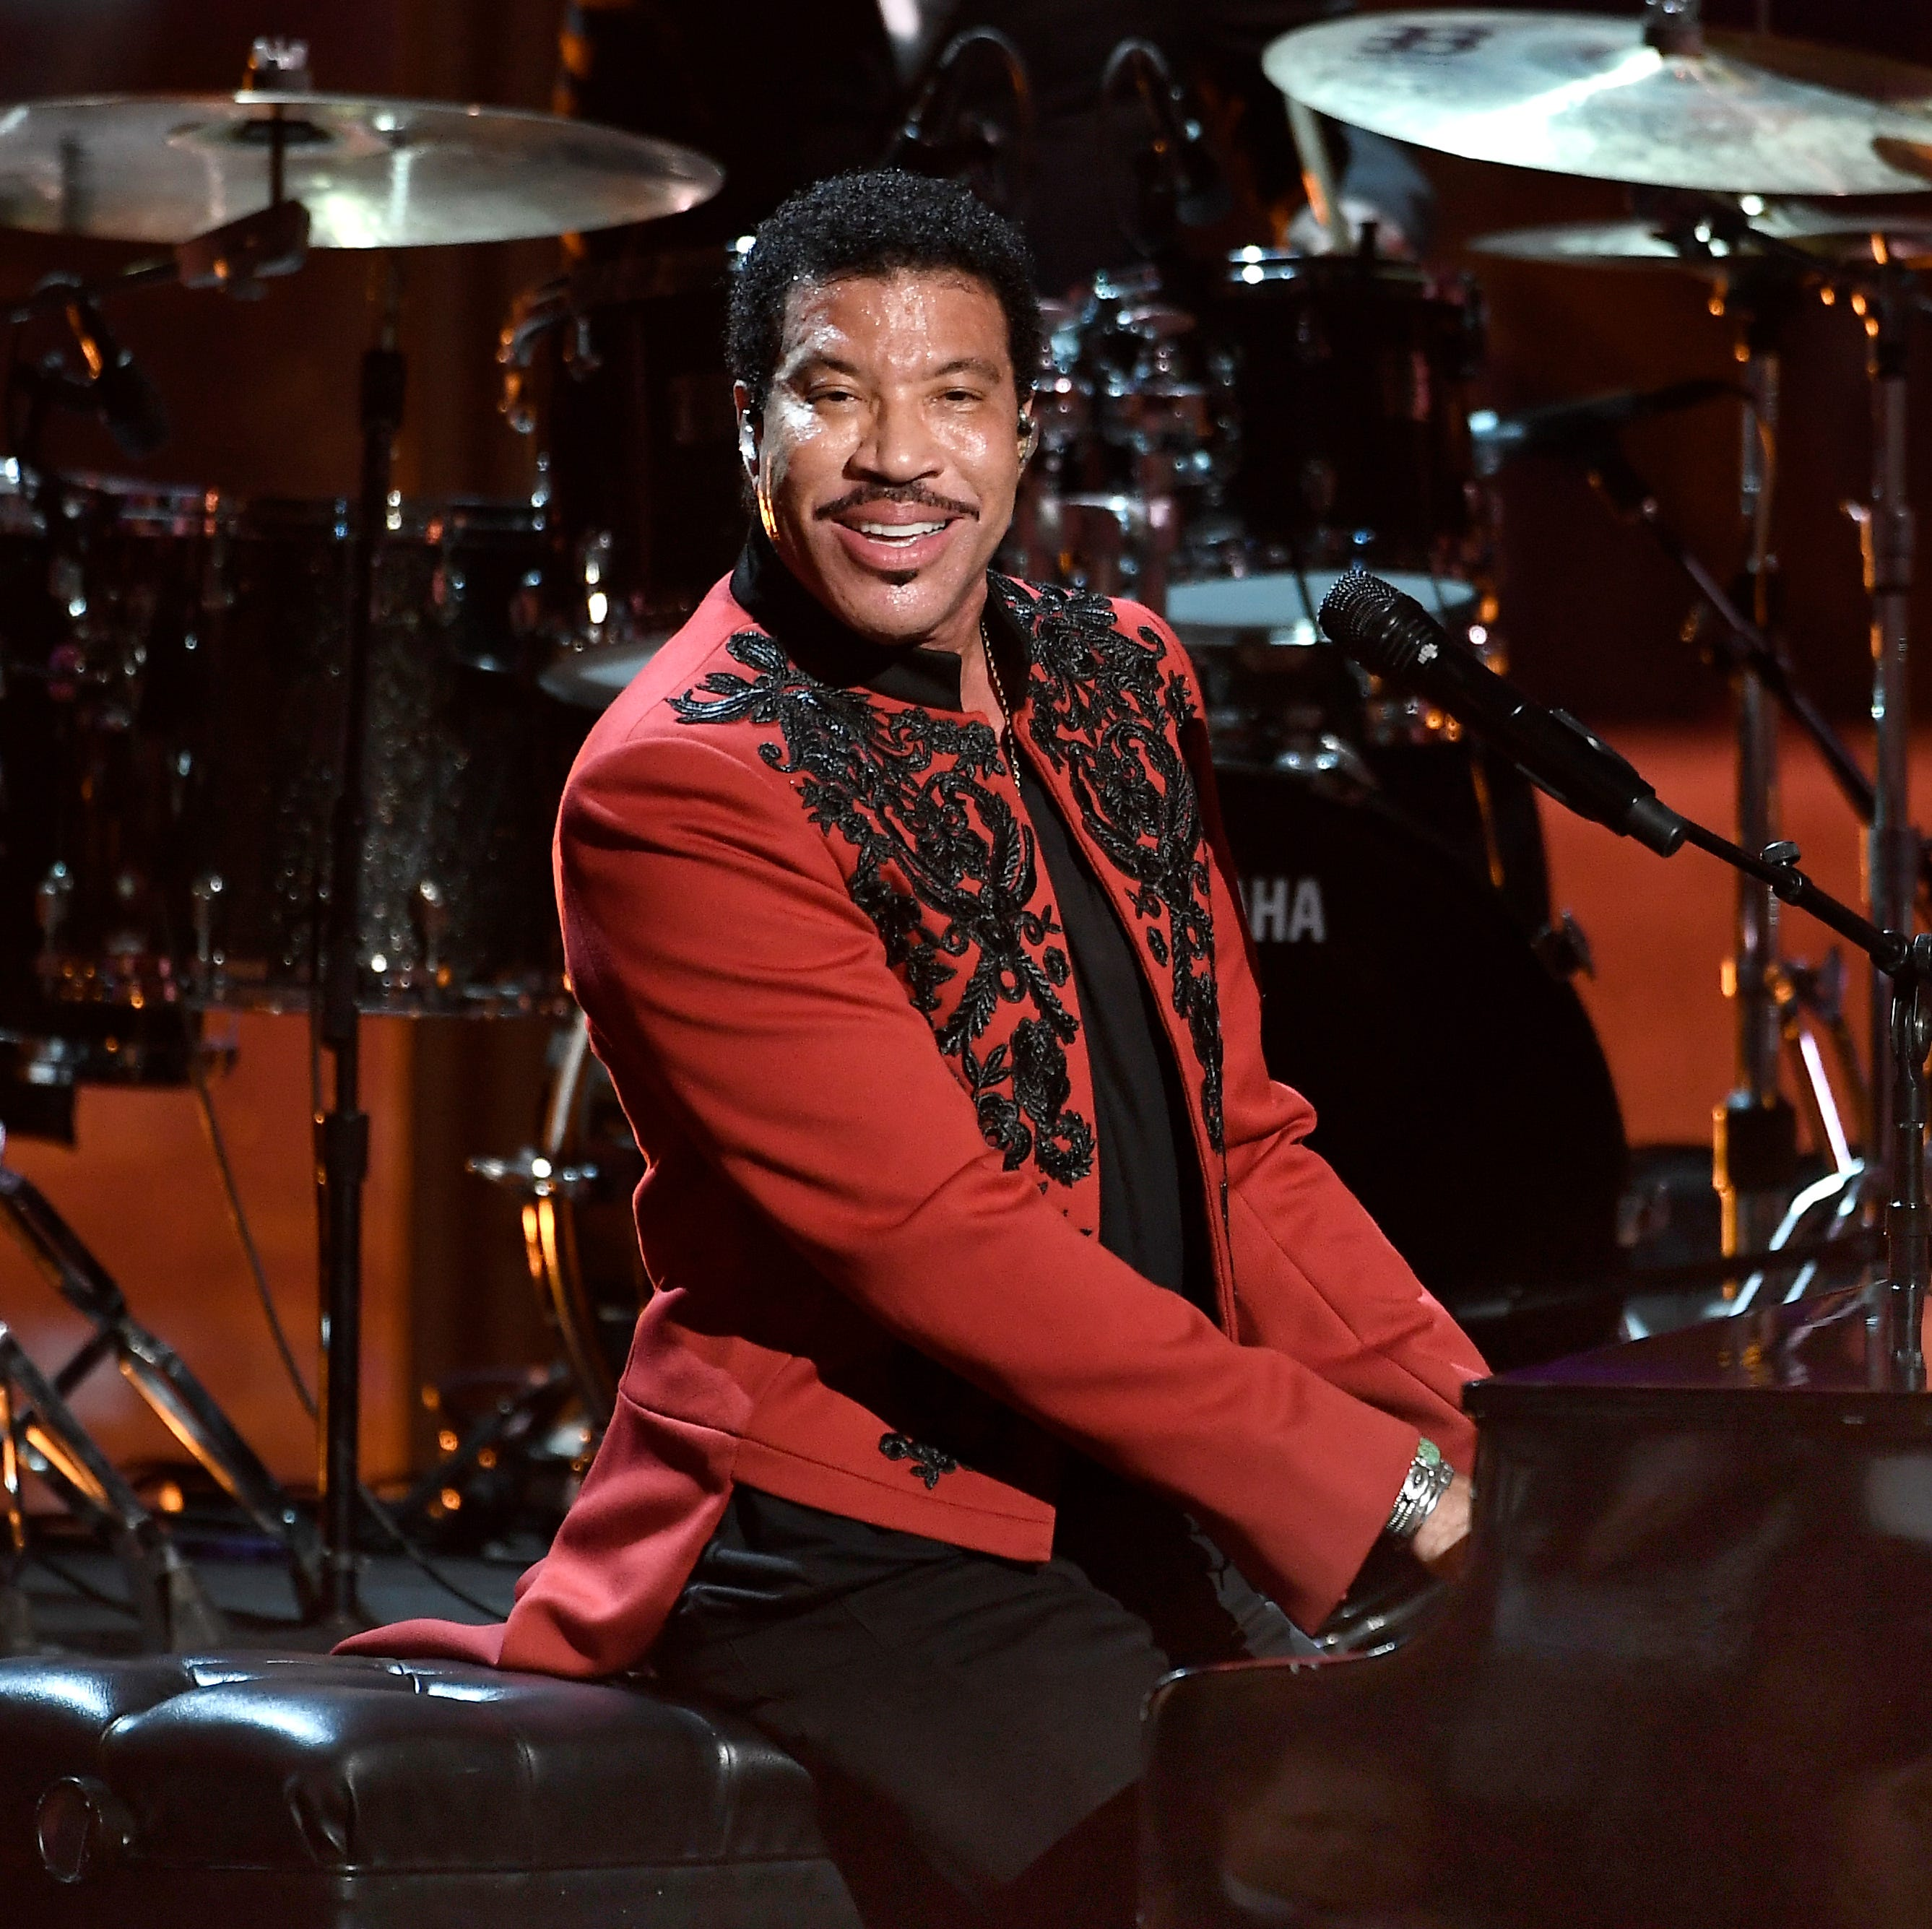 Live at the Garden 2019: Lionel Richie, Toby Keith, Doobie Brothers among headliners